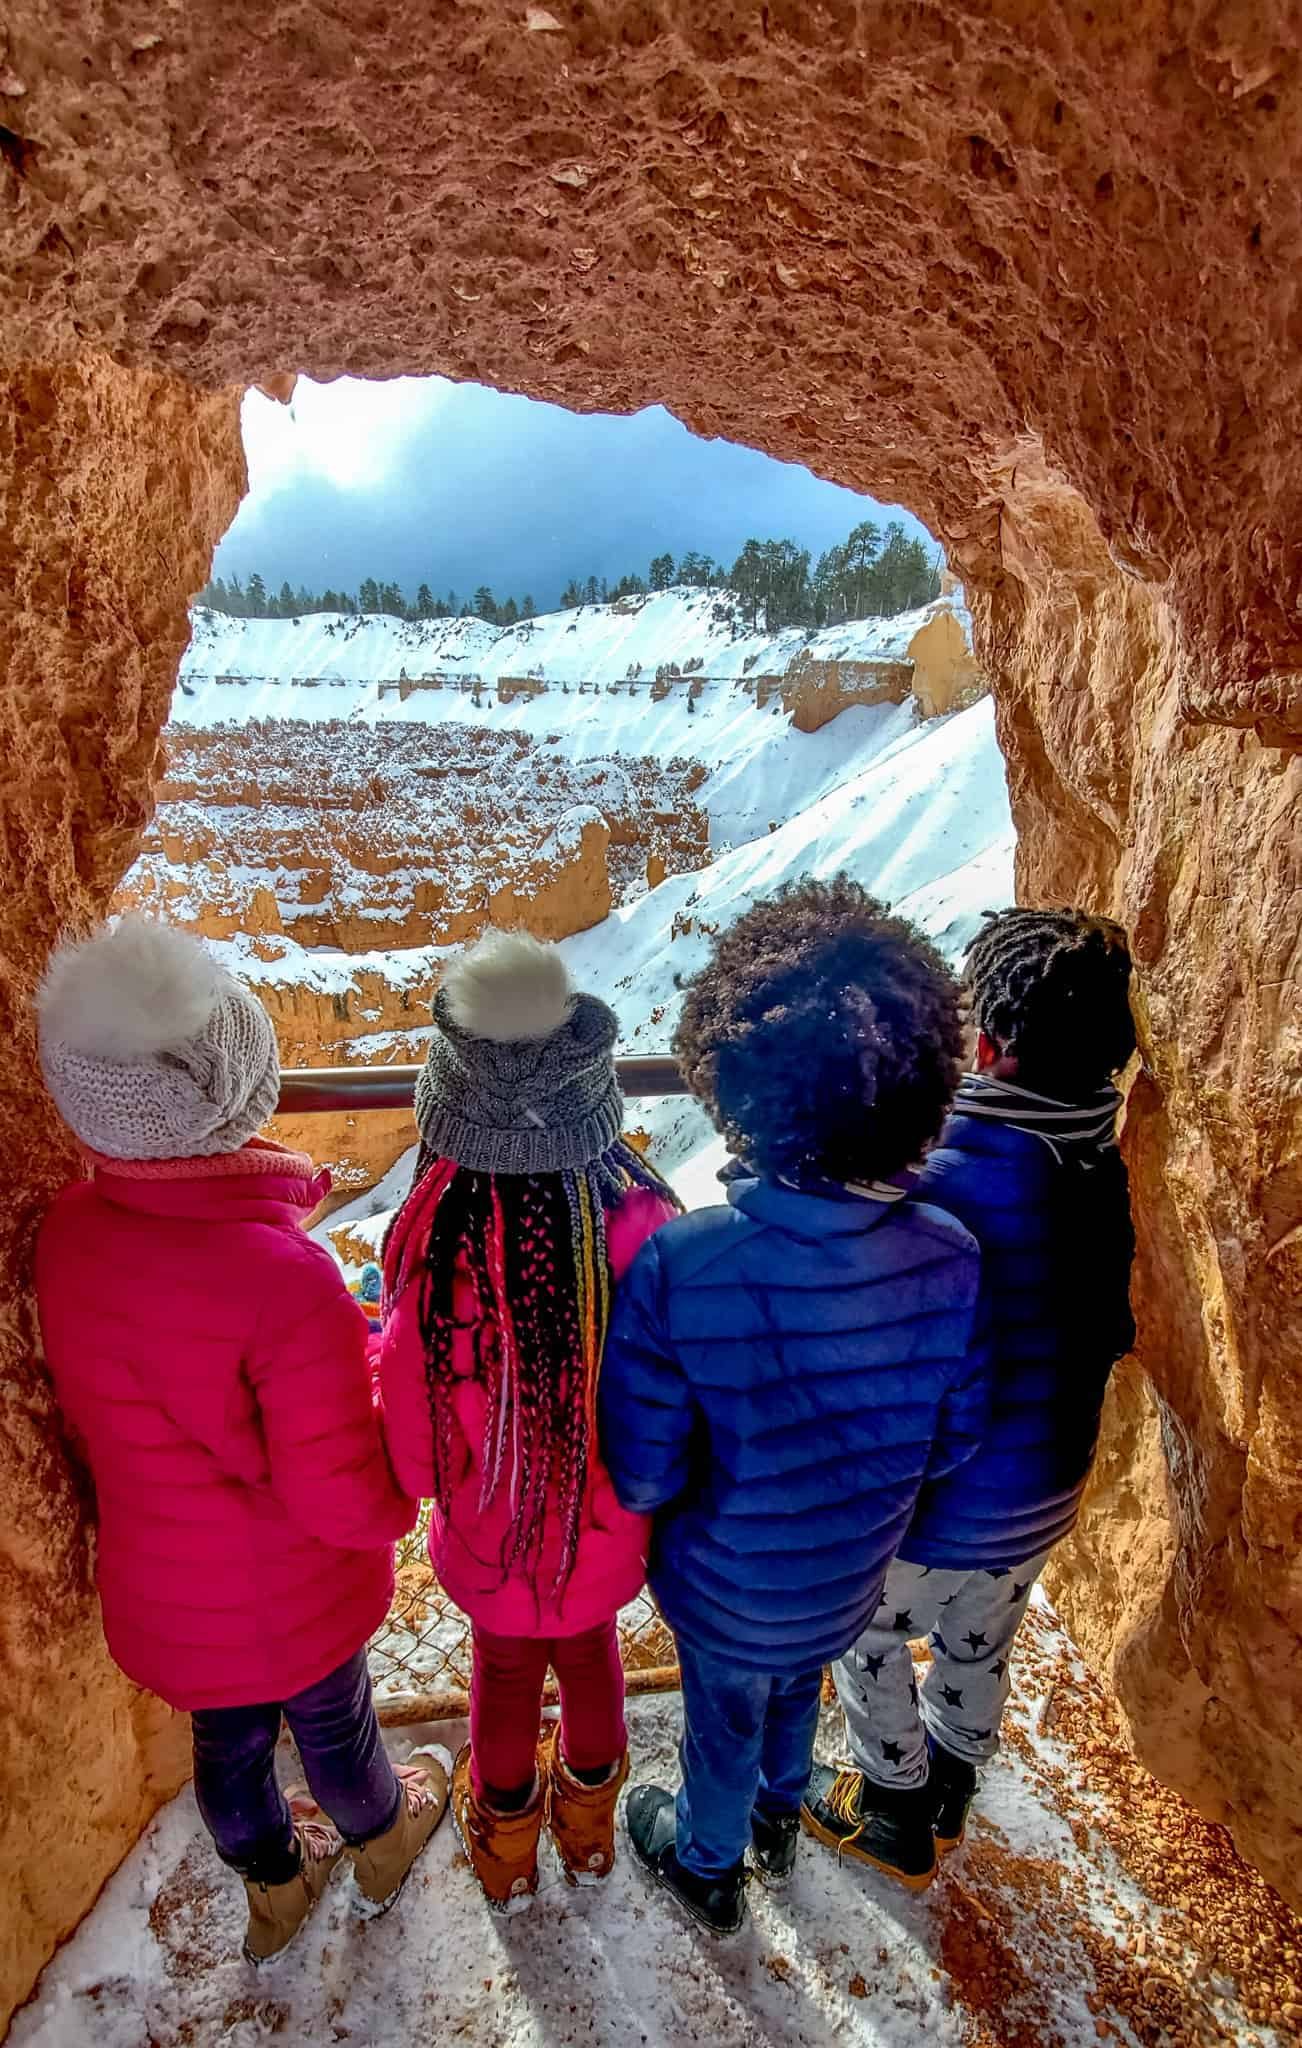 Children looking out towards the view at Bryce Canyon National Park.